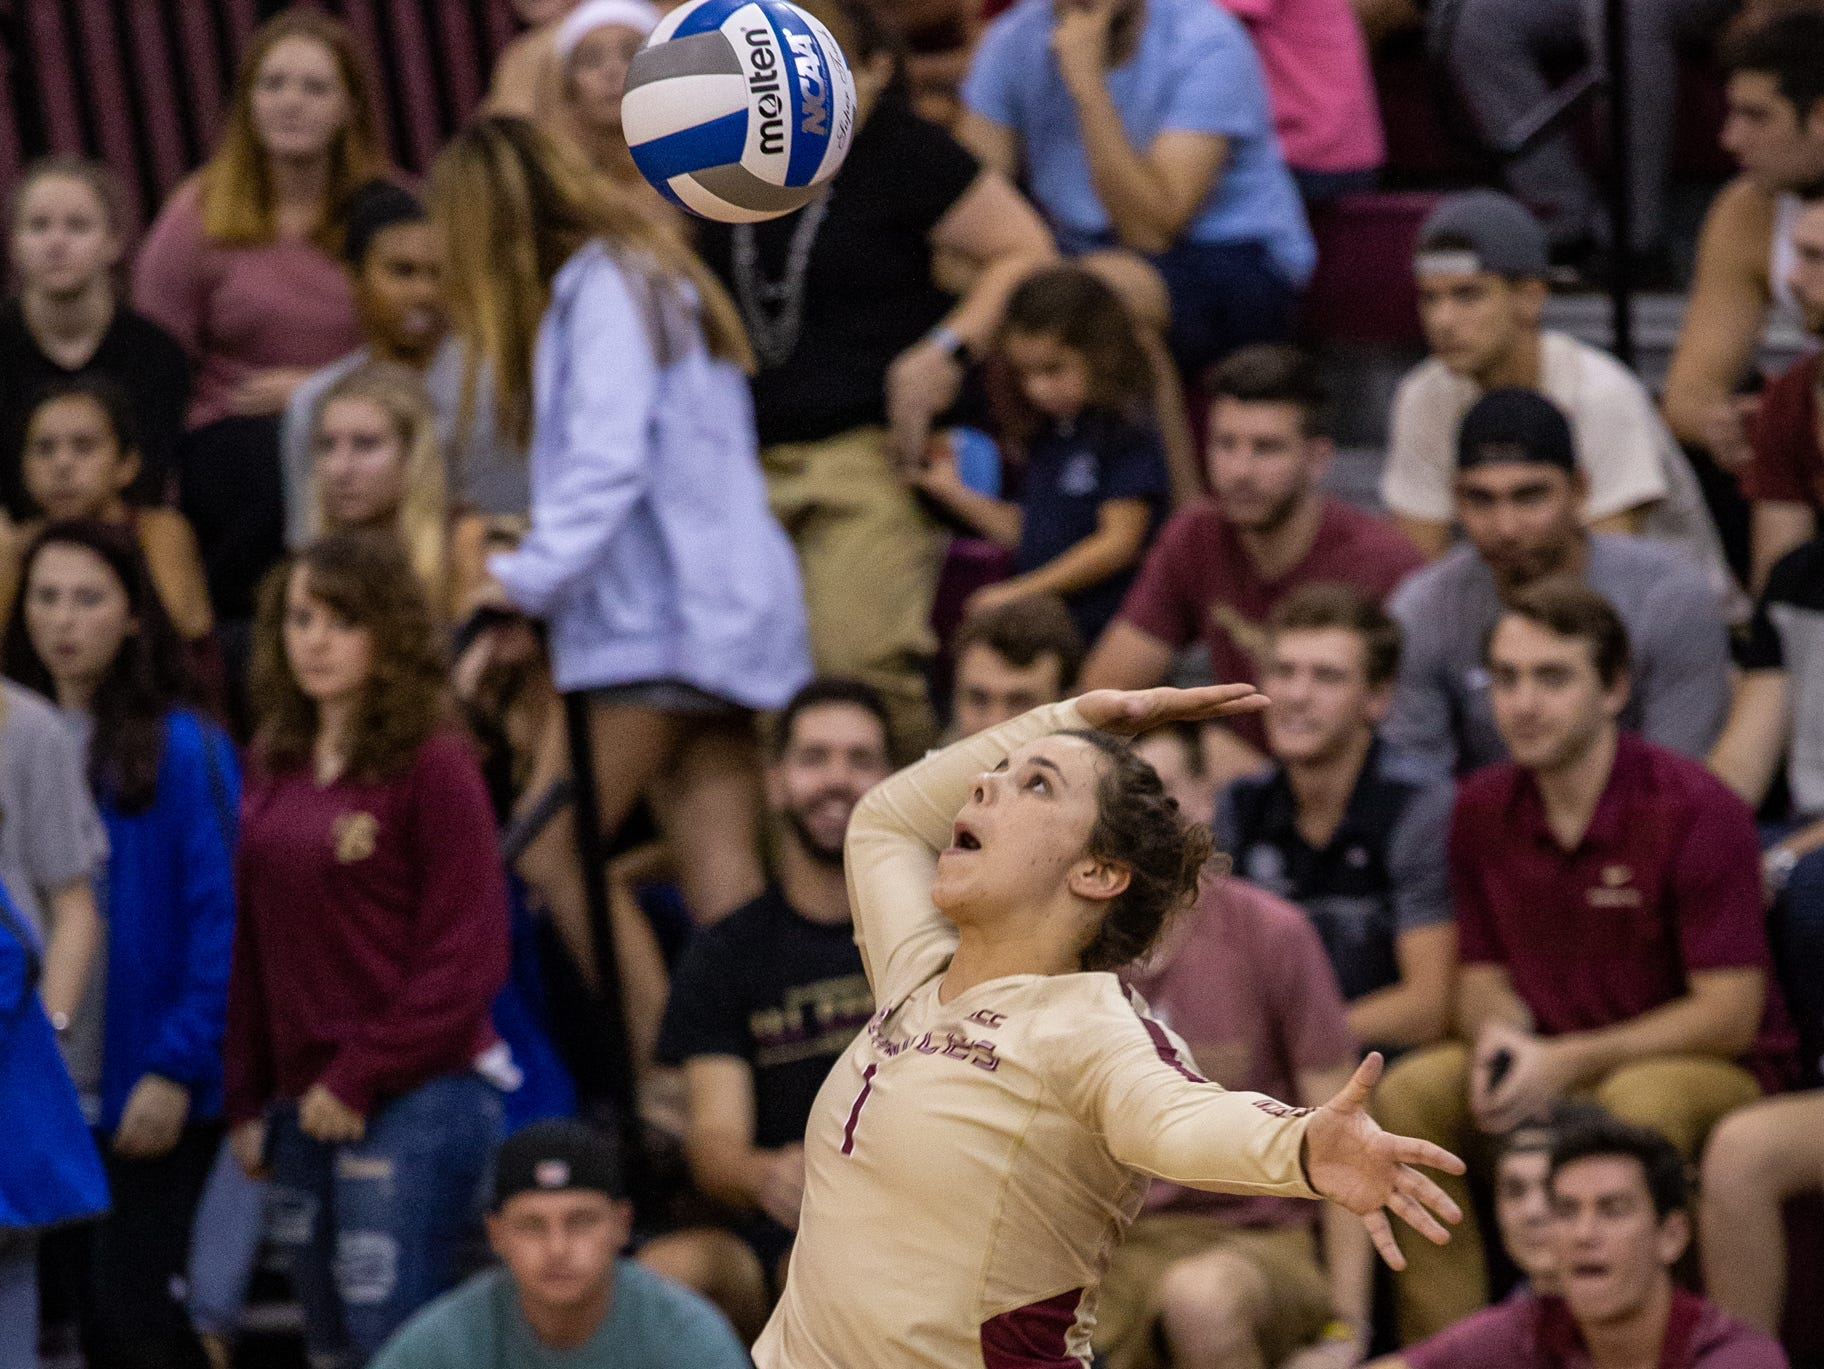 FSU Volleyball Libero Taylor Roberts (1)  serves at the game against Florida held at Tully Gymnasium on Wednesday.